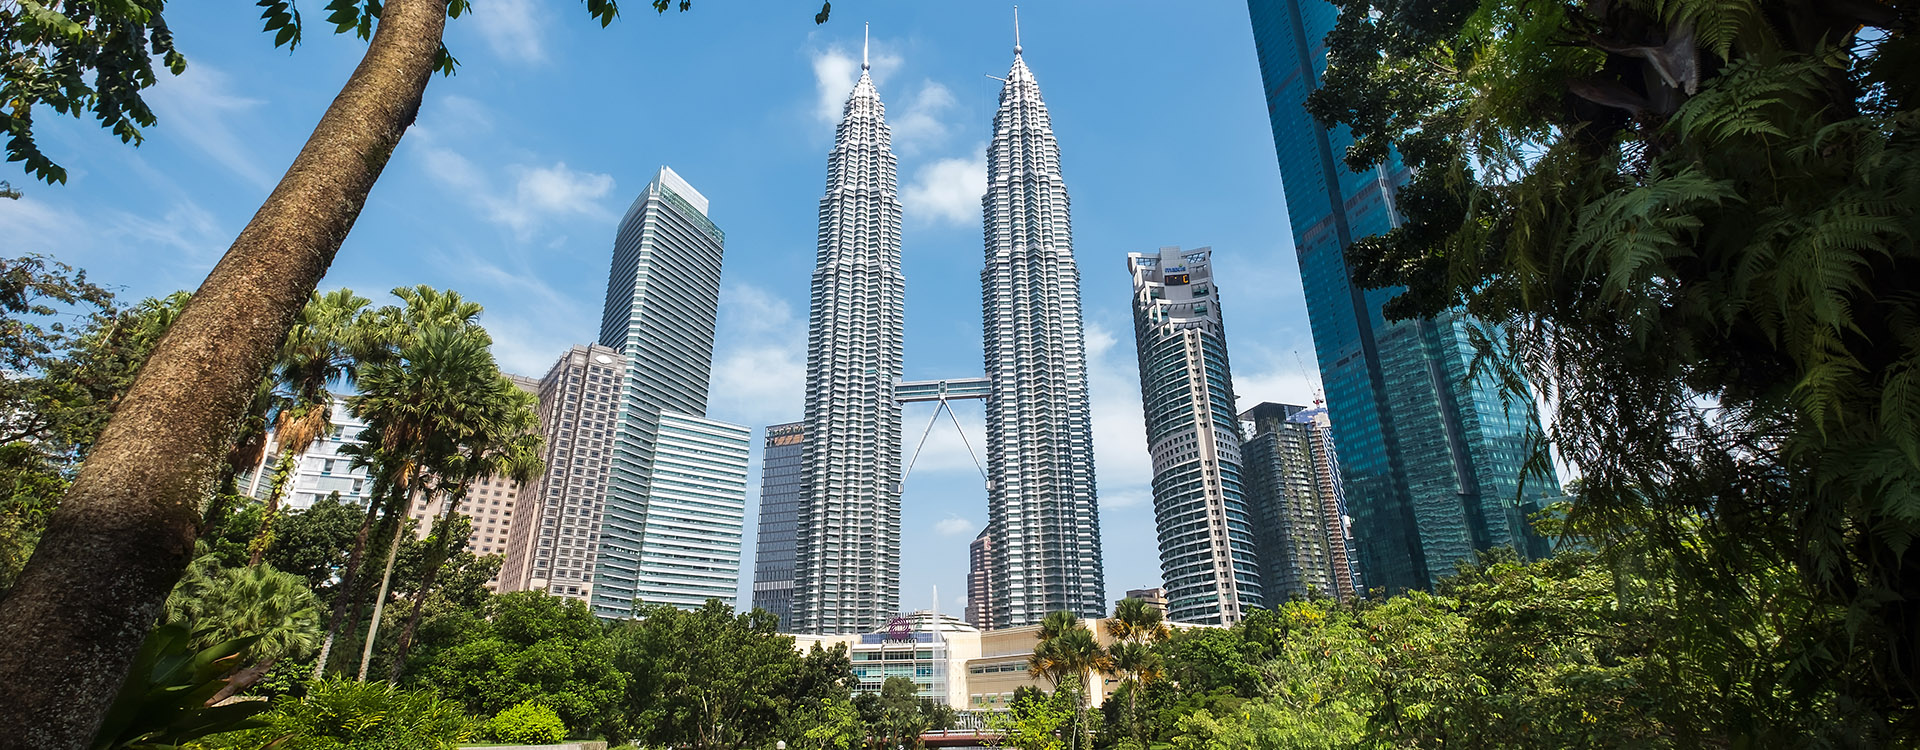 Famous Petronas Twin Towers captured from KLCC Park City Centre in Kuala Lumpur, Malaysia